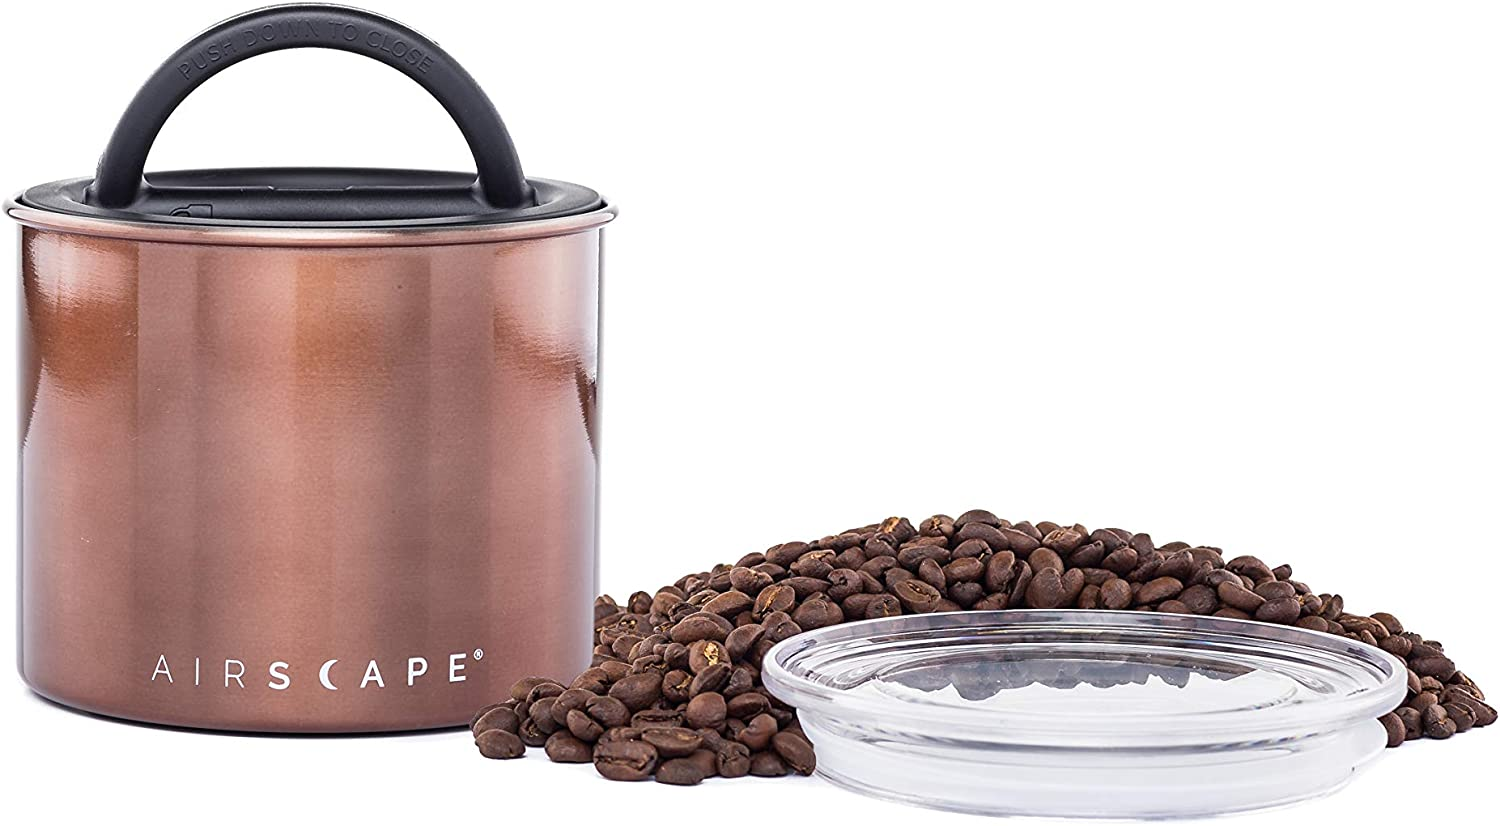 Airscape Coffee and Food Storage Canister - Patented Airtight Lid Preserve Food Freshness, Stainless Steel Food Container, Mocha Brown, Small 4-Inch Can